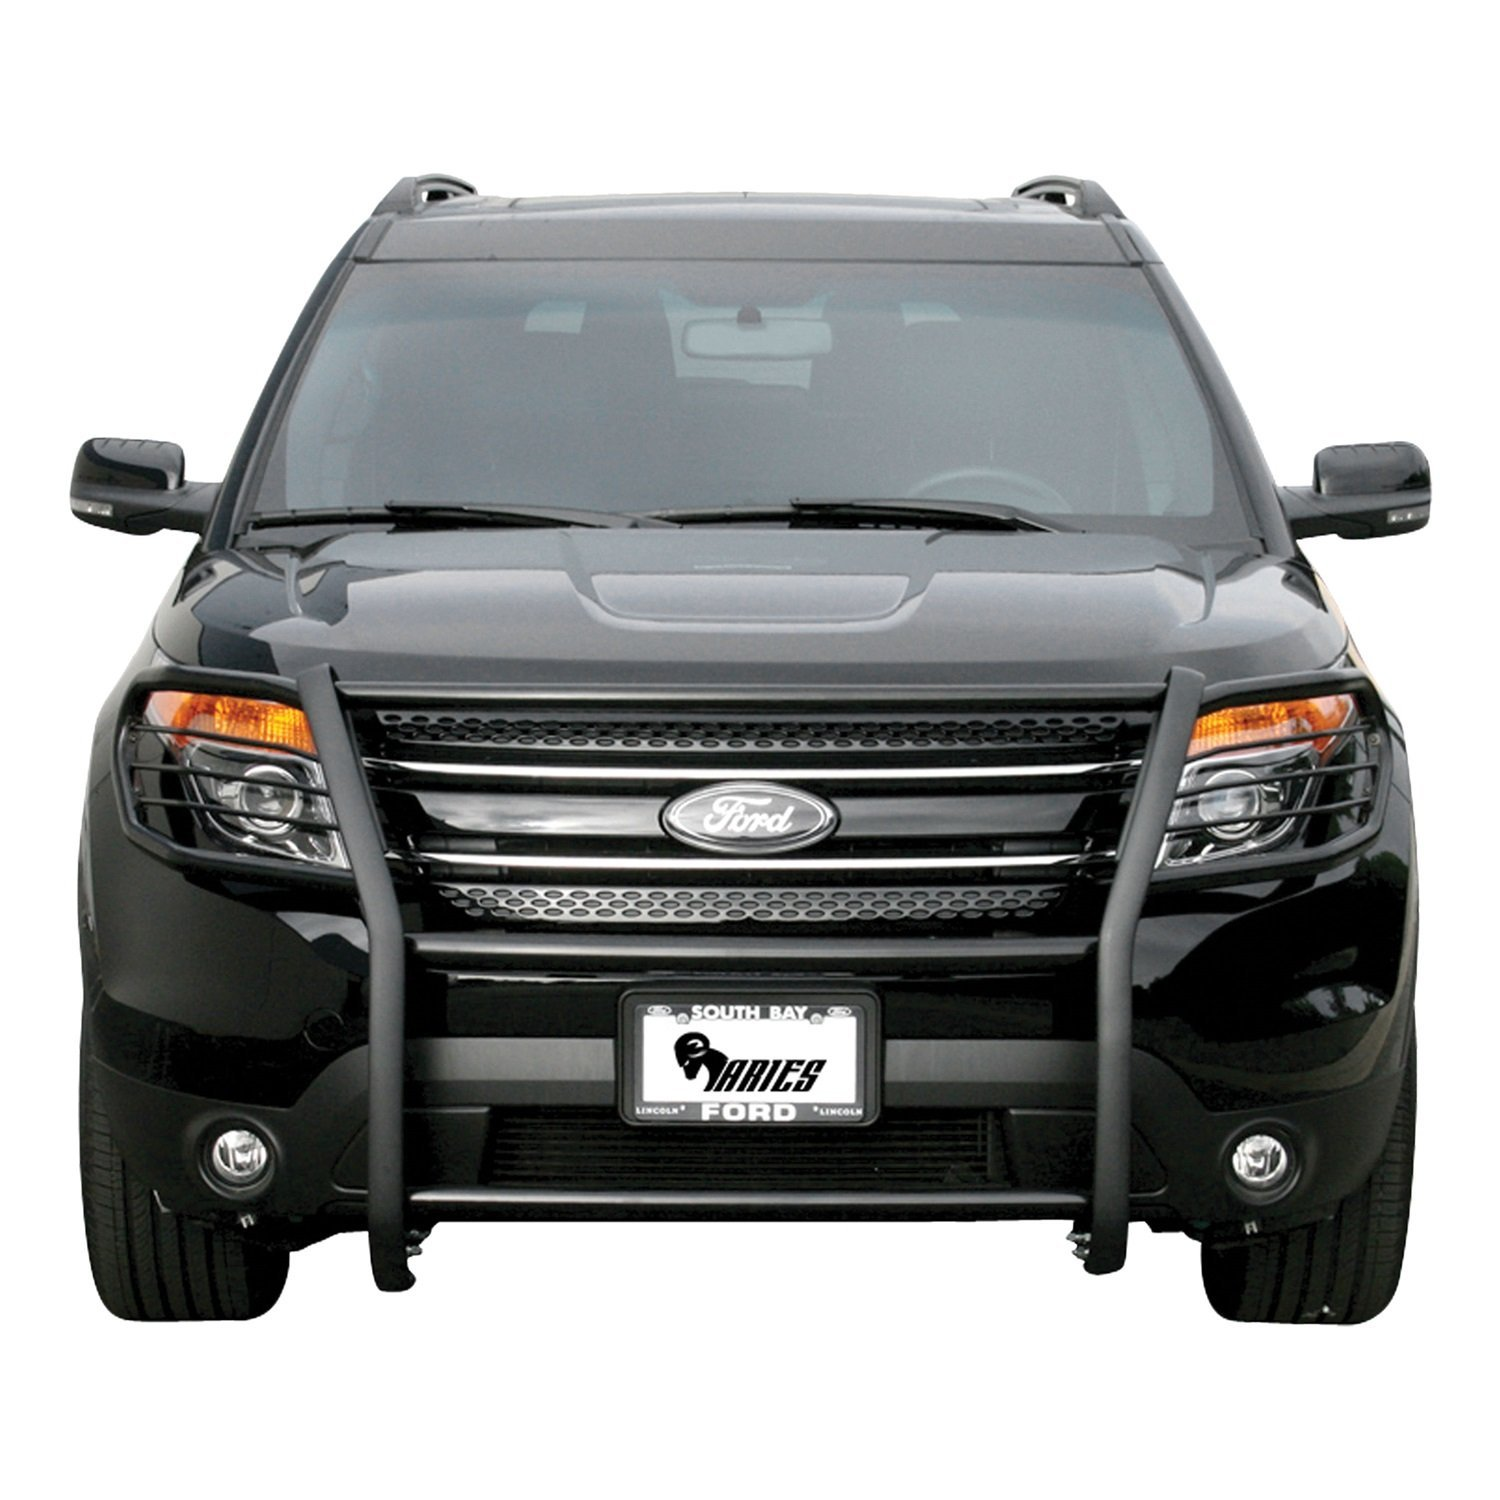 New 2017 ford explorer amazon com aries 3065 black steel grille guard automotive